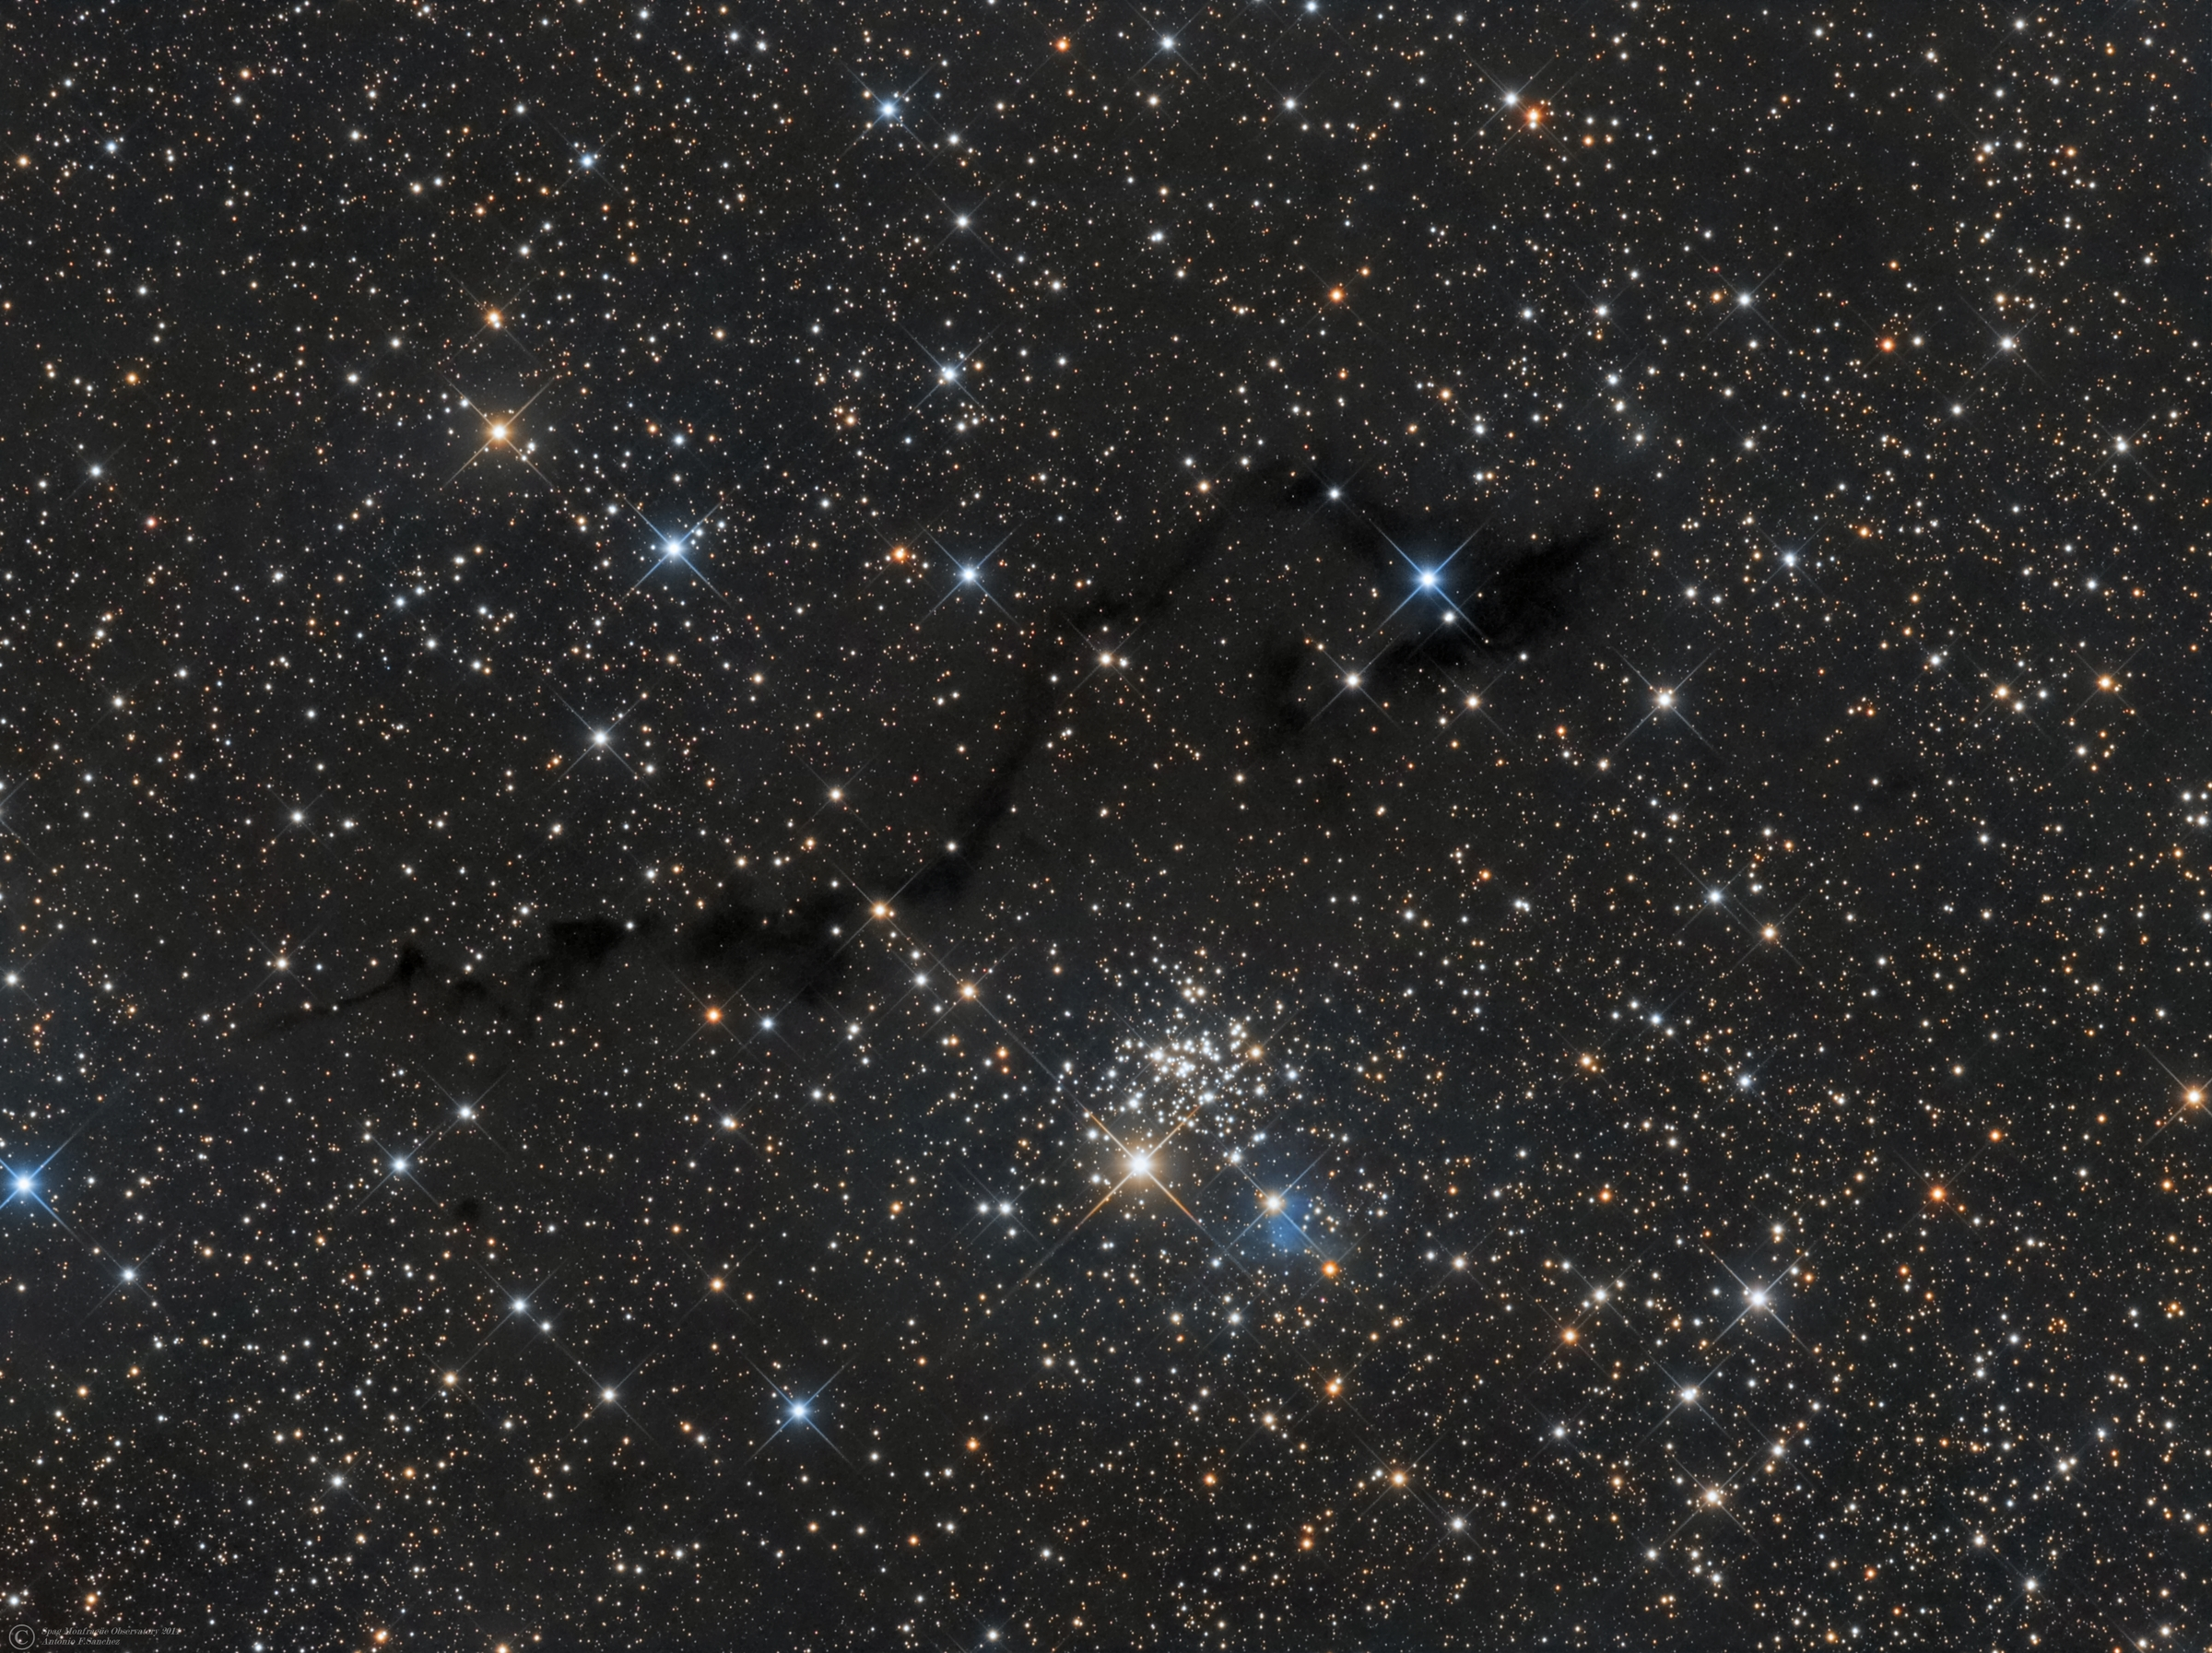 "NGC 654,VdB6,LDN 1332,1334,1337 (Cassiopeia).jpg - NGC 654,VdB6,LDN 1332,1334,1337 (Cassiopeia) * August-September 2014 * ASA N12 astrograph (f/3.6,1078mm) * DDM85 mount * FLI ML8300 at -25ºC * Optec LRGB filter set * L.520m R:180m G:160m B:210m * Unguided * NGC 654 is a young cluster,with an age of about 14 million years.The cluster`s 80 measured members (7th magnitude and fainter) appear in little clumps scattered across a mere 6´of sky,or 14 lightyears. Astronomers have taken keen interest in NGC 654 because of it displays nonuniform extinction across its face,with stars reddened by about 1 magnitude on average.Color excess indicates the amount of interstellar reddening suffered by the light from the star when it passes through dust in space.Data from Indian Astronomer Biman J. Medhi and colleagues (2008), show evidence for the presence of at least two layers of dust along the line of sight to the cluster, which lies at a distance of about 7800 light-years.The 7th magnitude yellow supergiant star HD 10494 is a likely member of this cluster with a recessional velocity of about 31km/sec.They estimate the distances to the two dust layers to be about 652 and 3300 light-years, placing the clouds much closer to the Sun than the cluster.The foreground dust grains,appear to be responsible,then, for the nonuniform extinction towards the cluster,whose least reddened stars lie close to the cluster center.VdB 6 is a little reflection nebula. The star wrapped in vdB 6 is listed as HIP 8074 of magnitude 9.66, located in the Perseus arm, which gives the nebula a distinctly bluish color.Credits: Stephen James O´Meara        ""Deep-Sky Companions:The Secret Deep, Vol 4""         Italian Wikipedia"